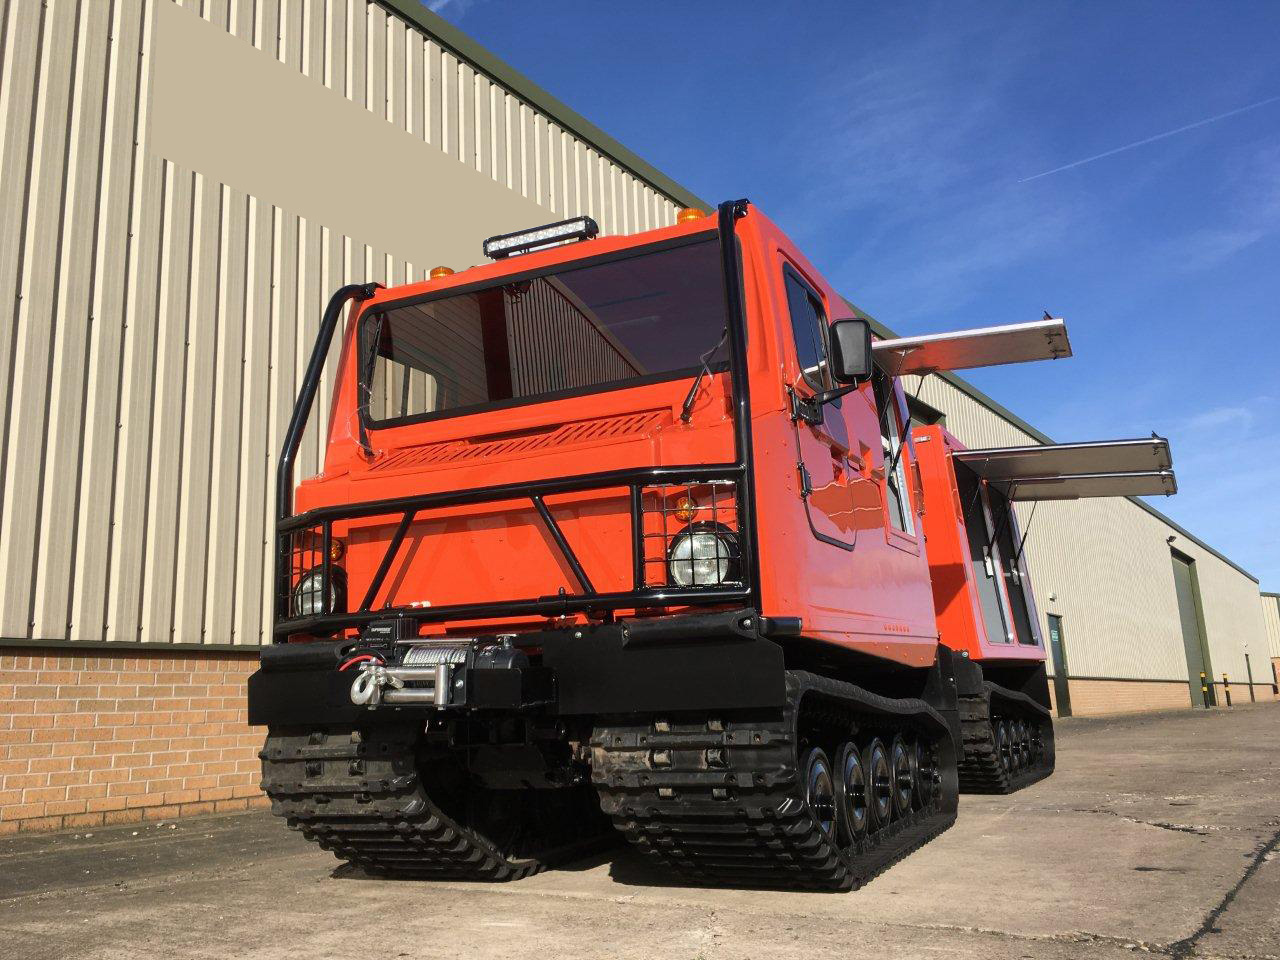 military vehicles for sale - Hagglund BV206 Multi-Purpose Vehicle